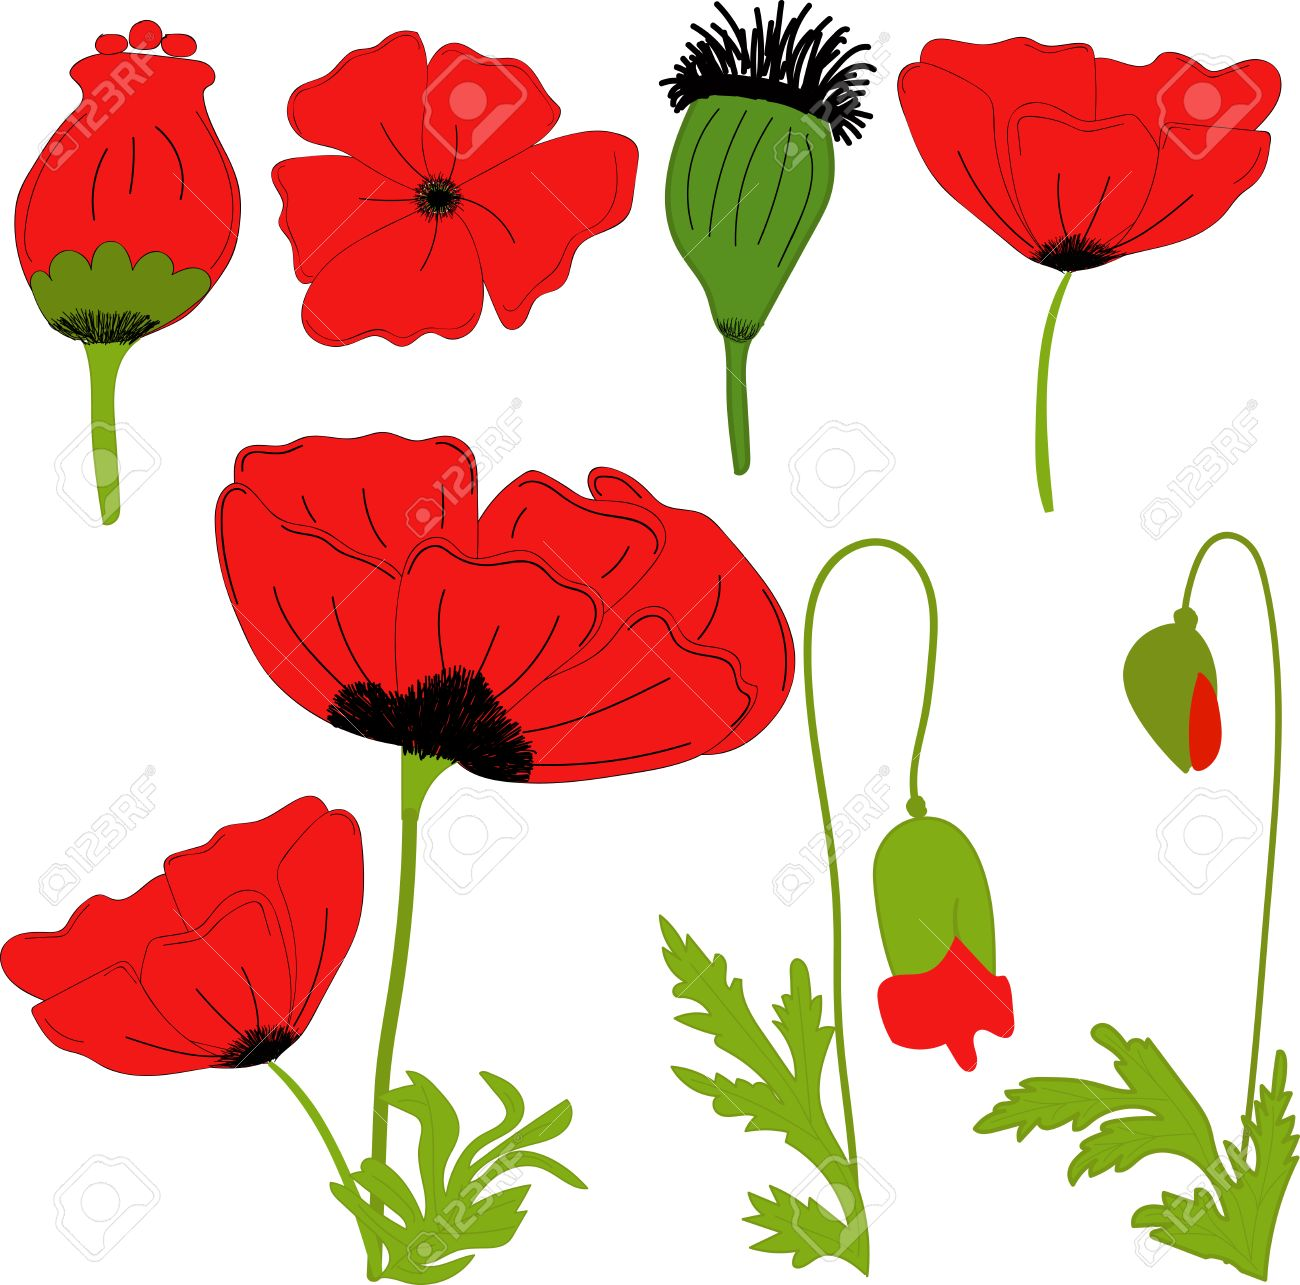 Separate Elements Flowers Red Poppy Flowers Leaves Bolls